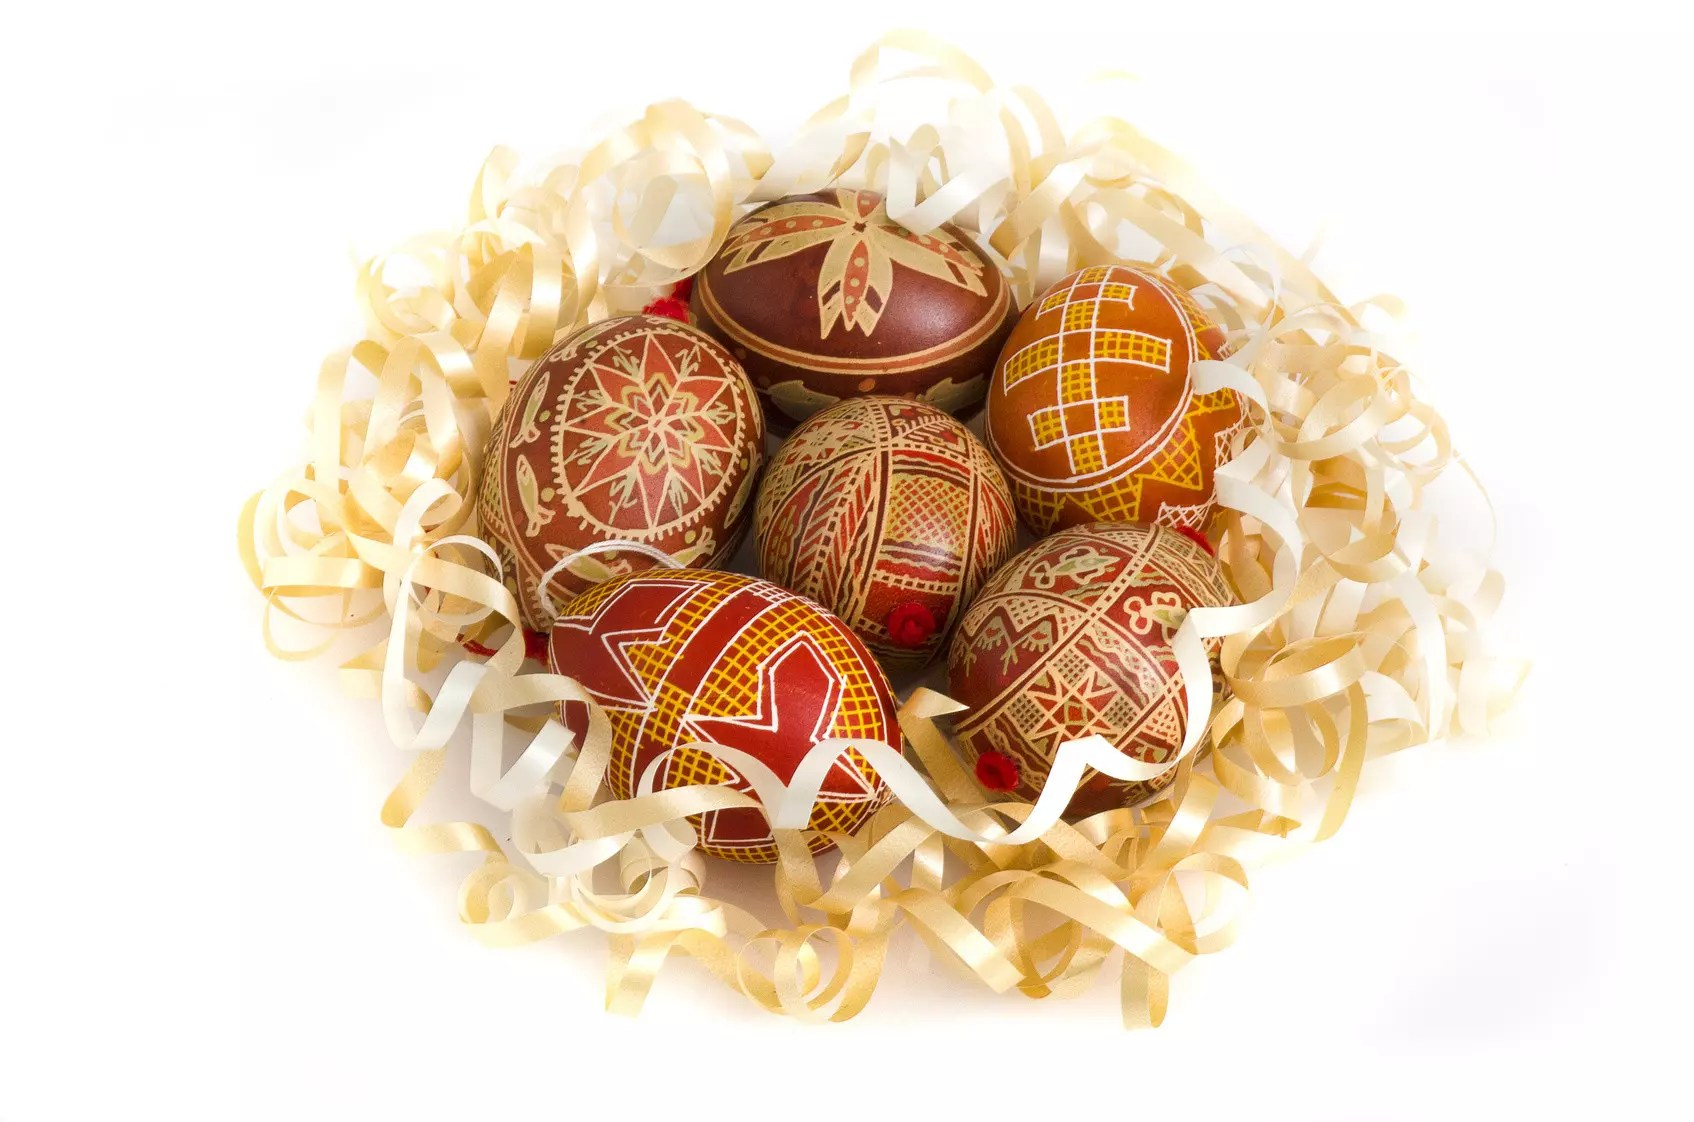 Ostern in Russland. Das traditionelle Osternfest in Russland